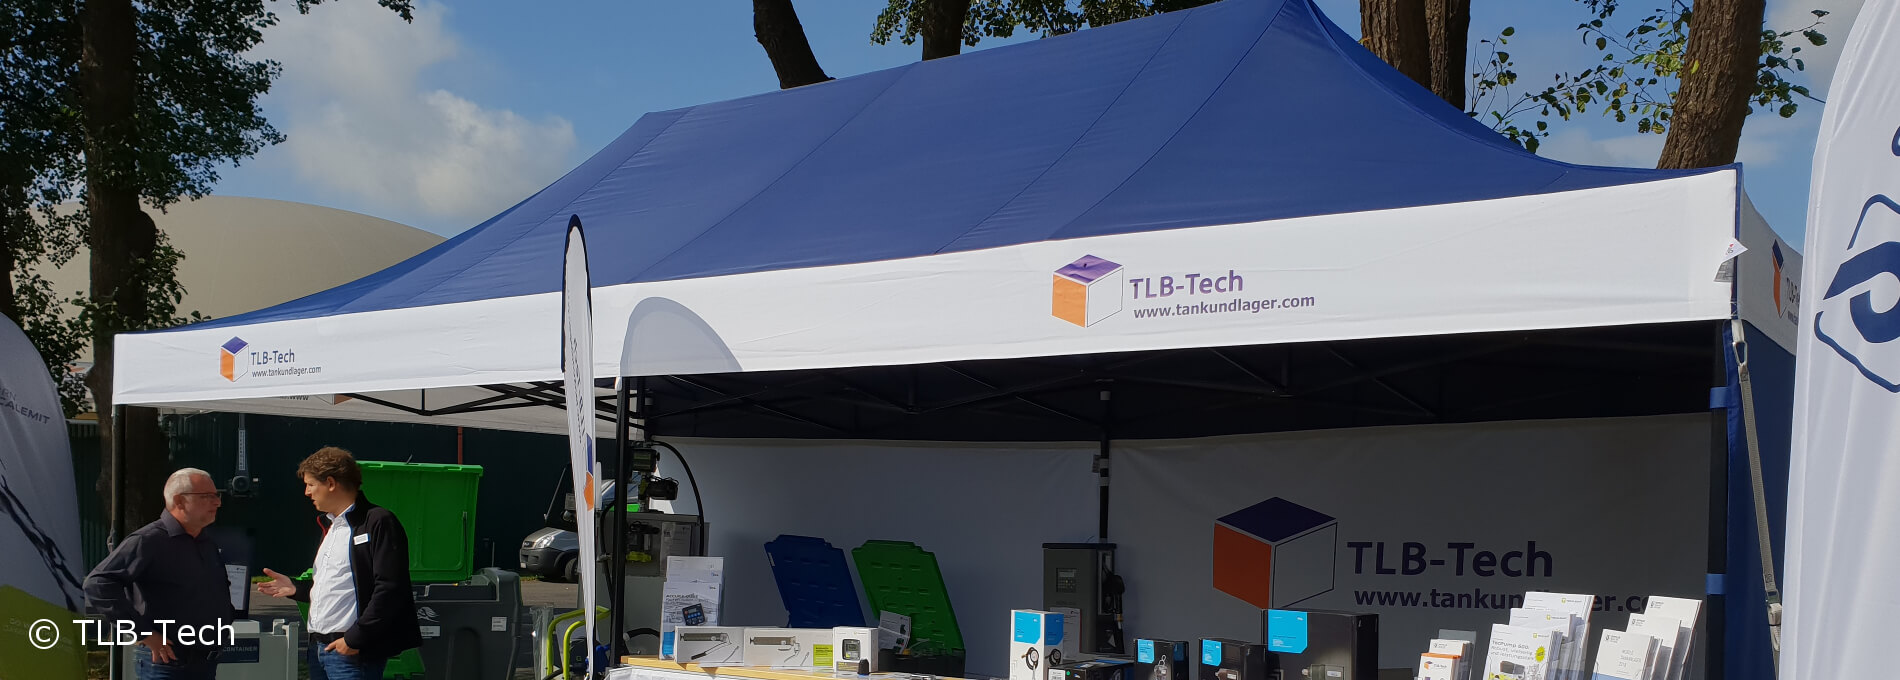 Blue, personalized canopy tent by TLB-Tech